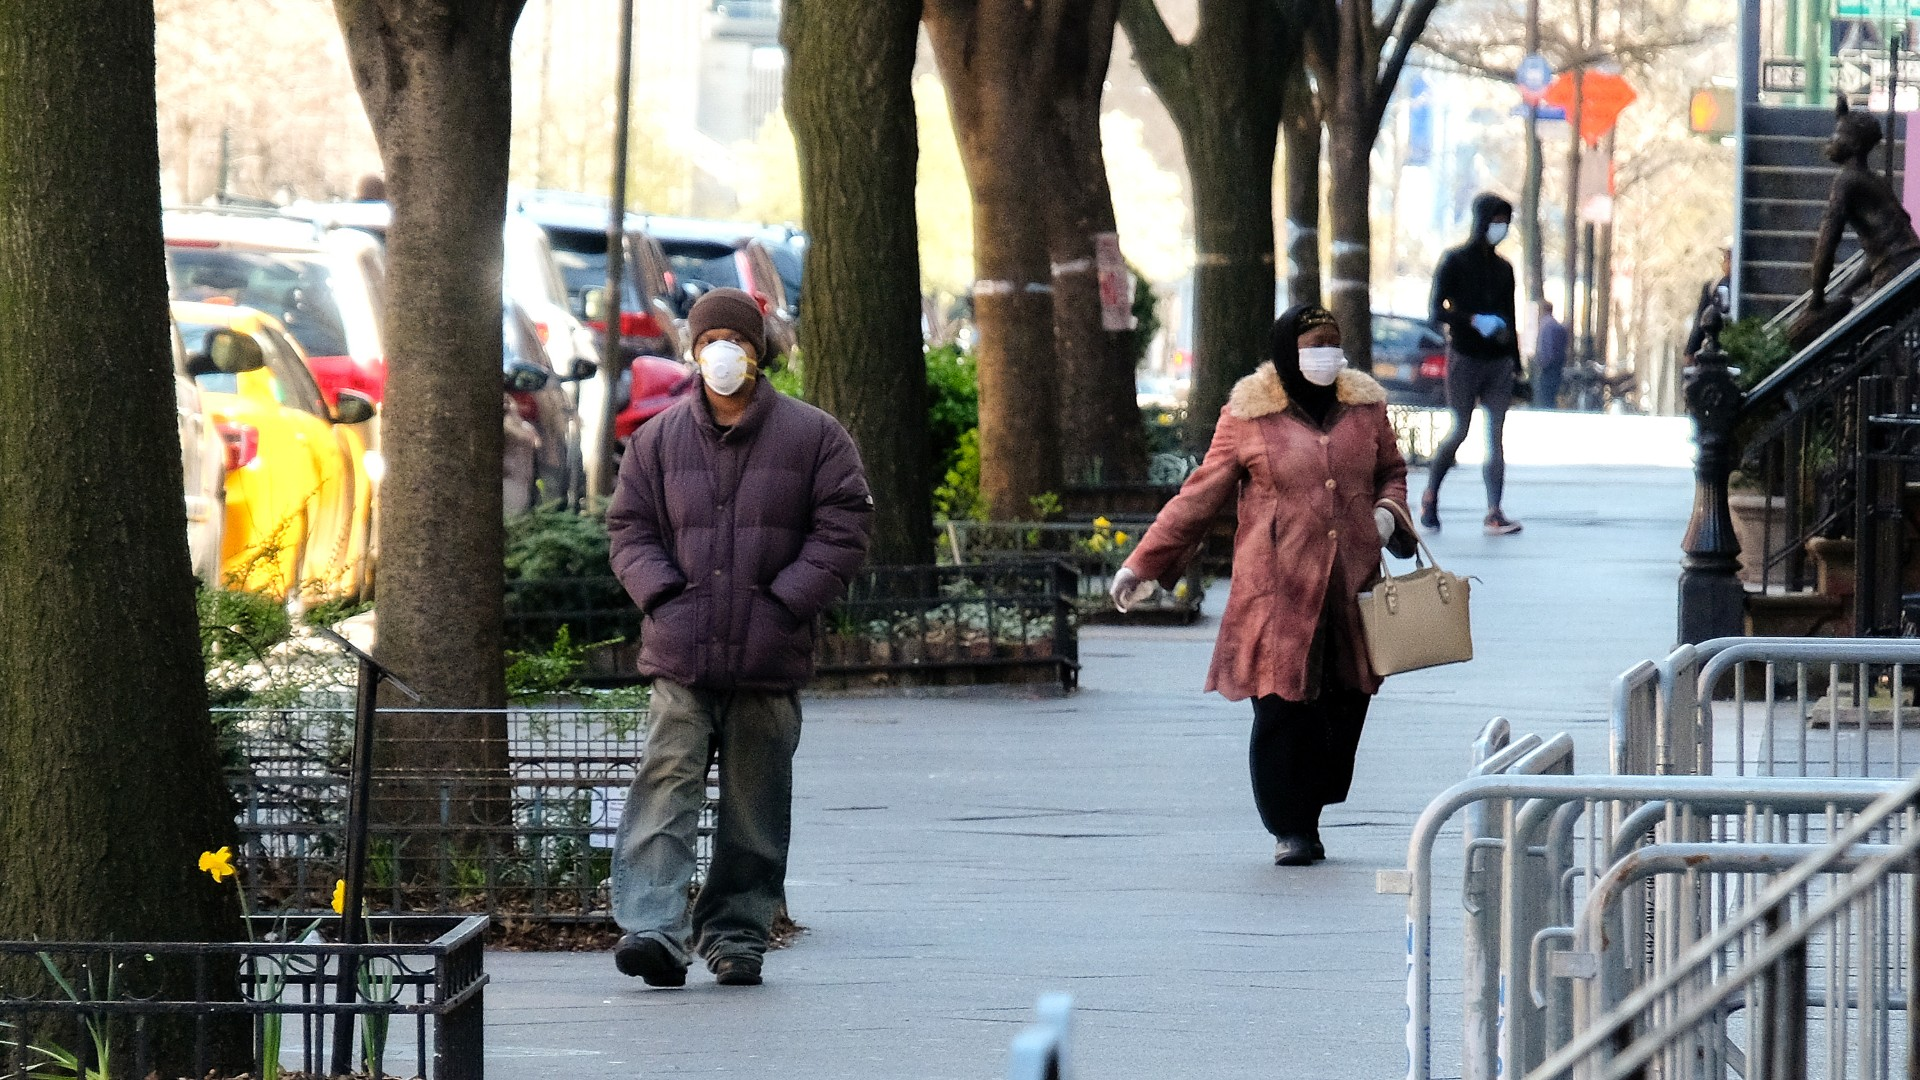 People wearing protective masks are seen walking in the Harlem neighborhood of Manhattan as the coronavirus continues to spread across the United States on April 2, 2020 in New York City. (Dia Dipasupil/Getty Images)